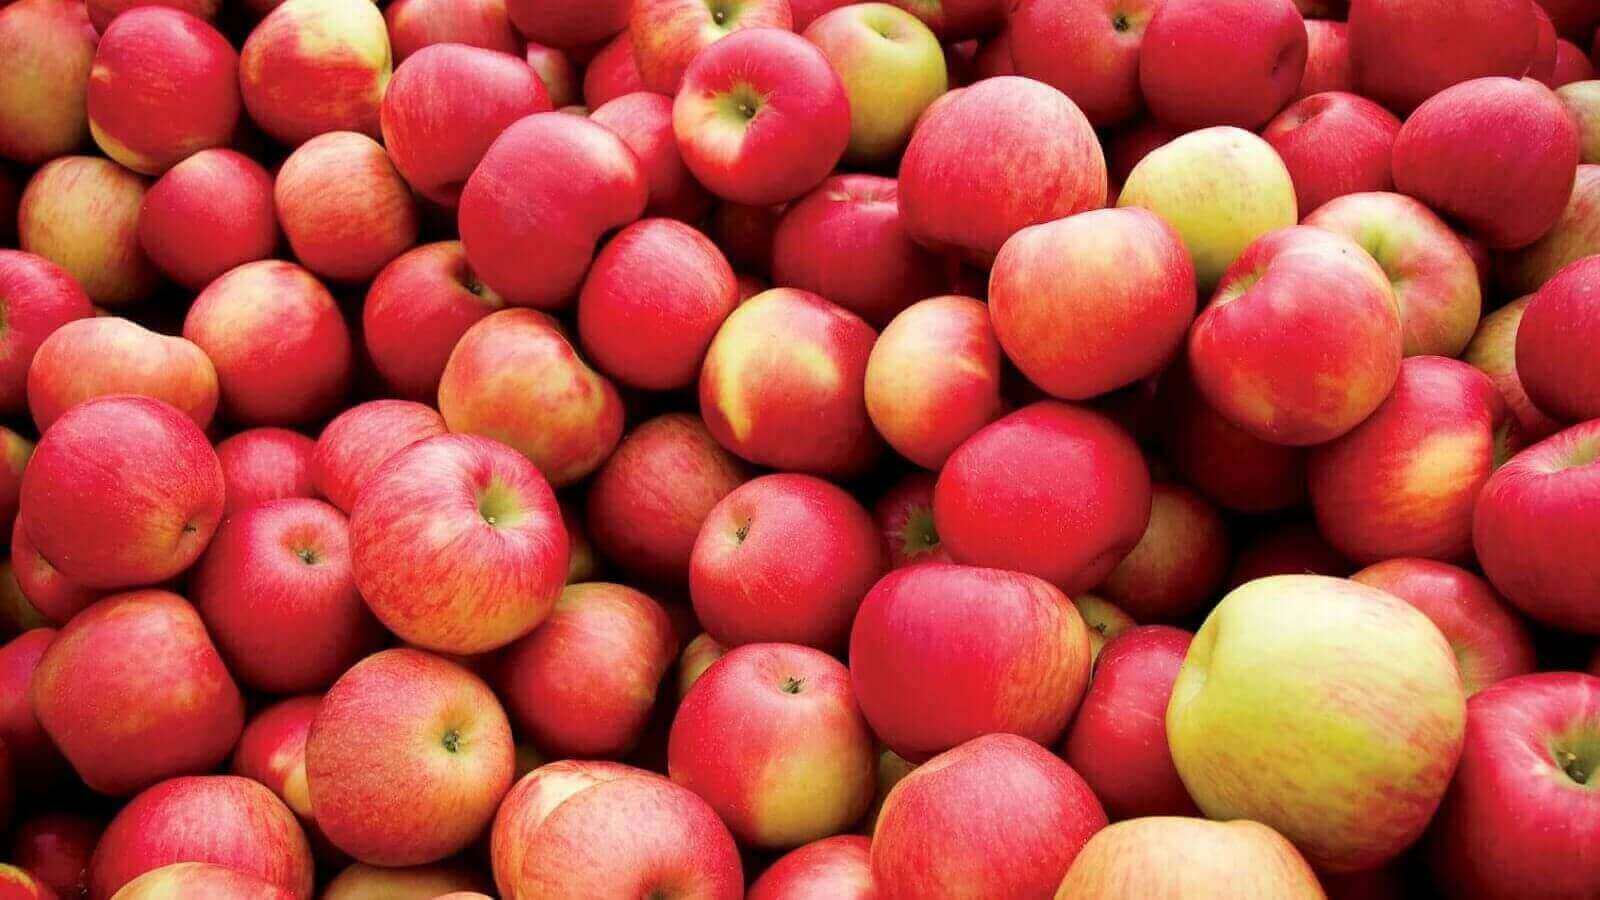 Biomaterial From Apple Waste Leads to Medical Breakthrough | All3DP